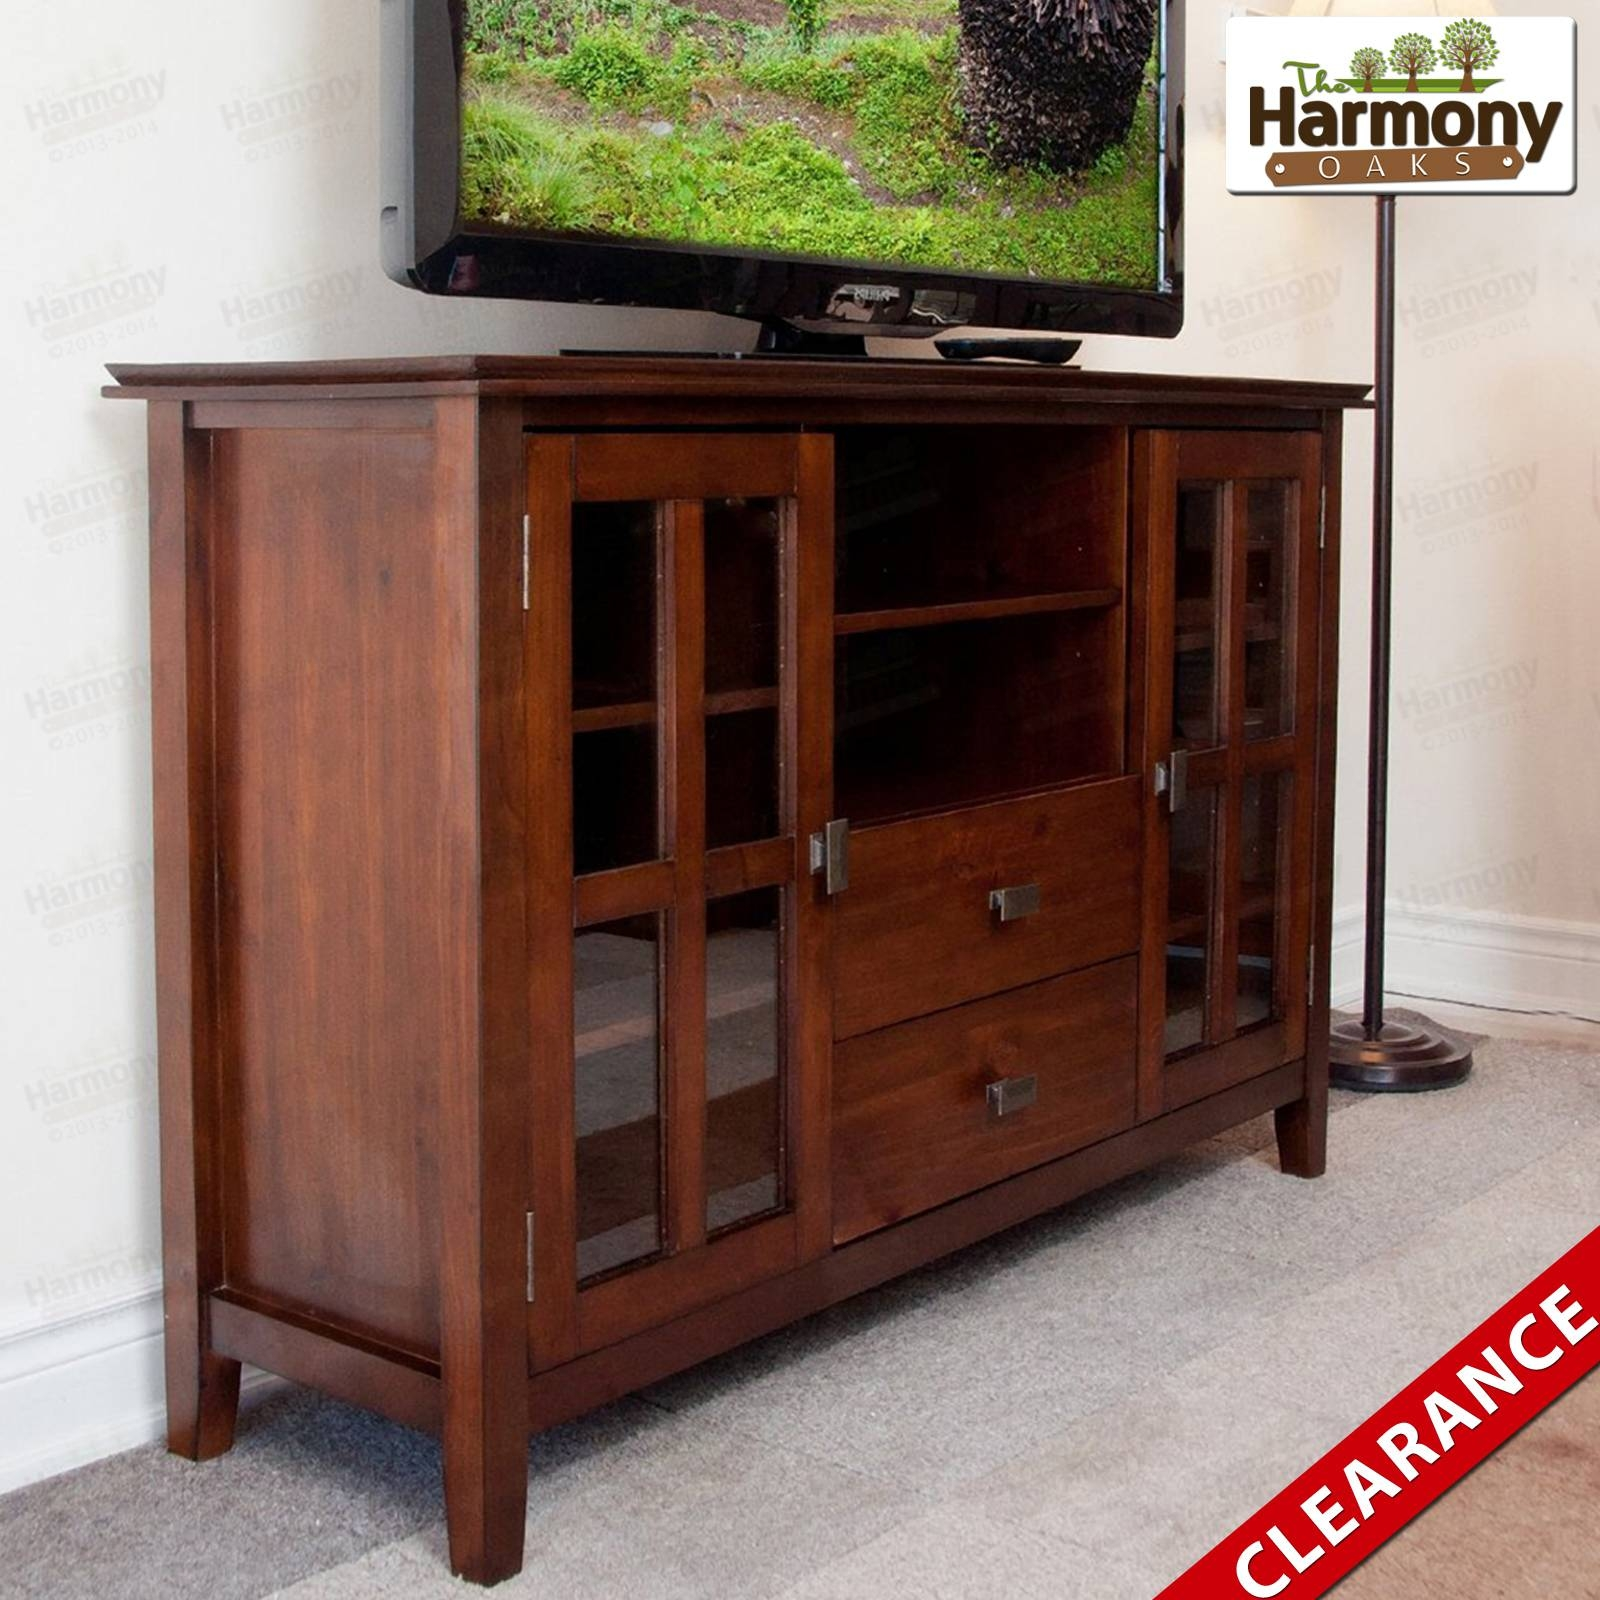 Cherry Tv Stand.lightbox. Cherry Wood Tv Stand. Better Homes And inside Cherry Wood Tv Stands (Image 3 of 15)